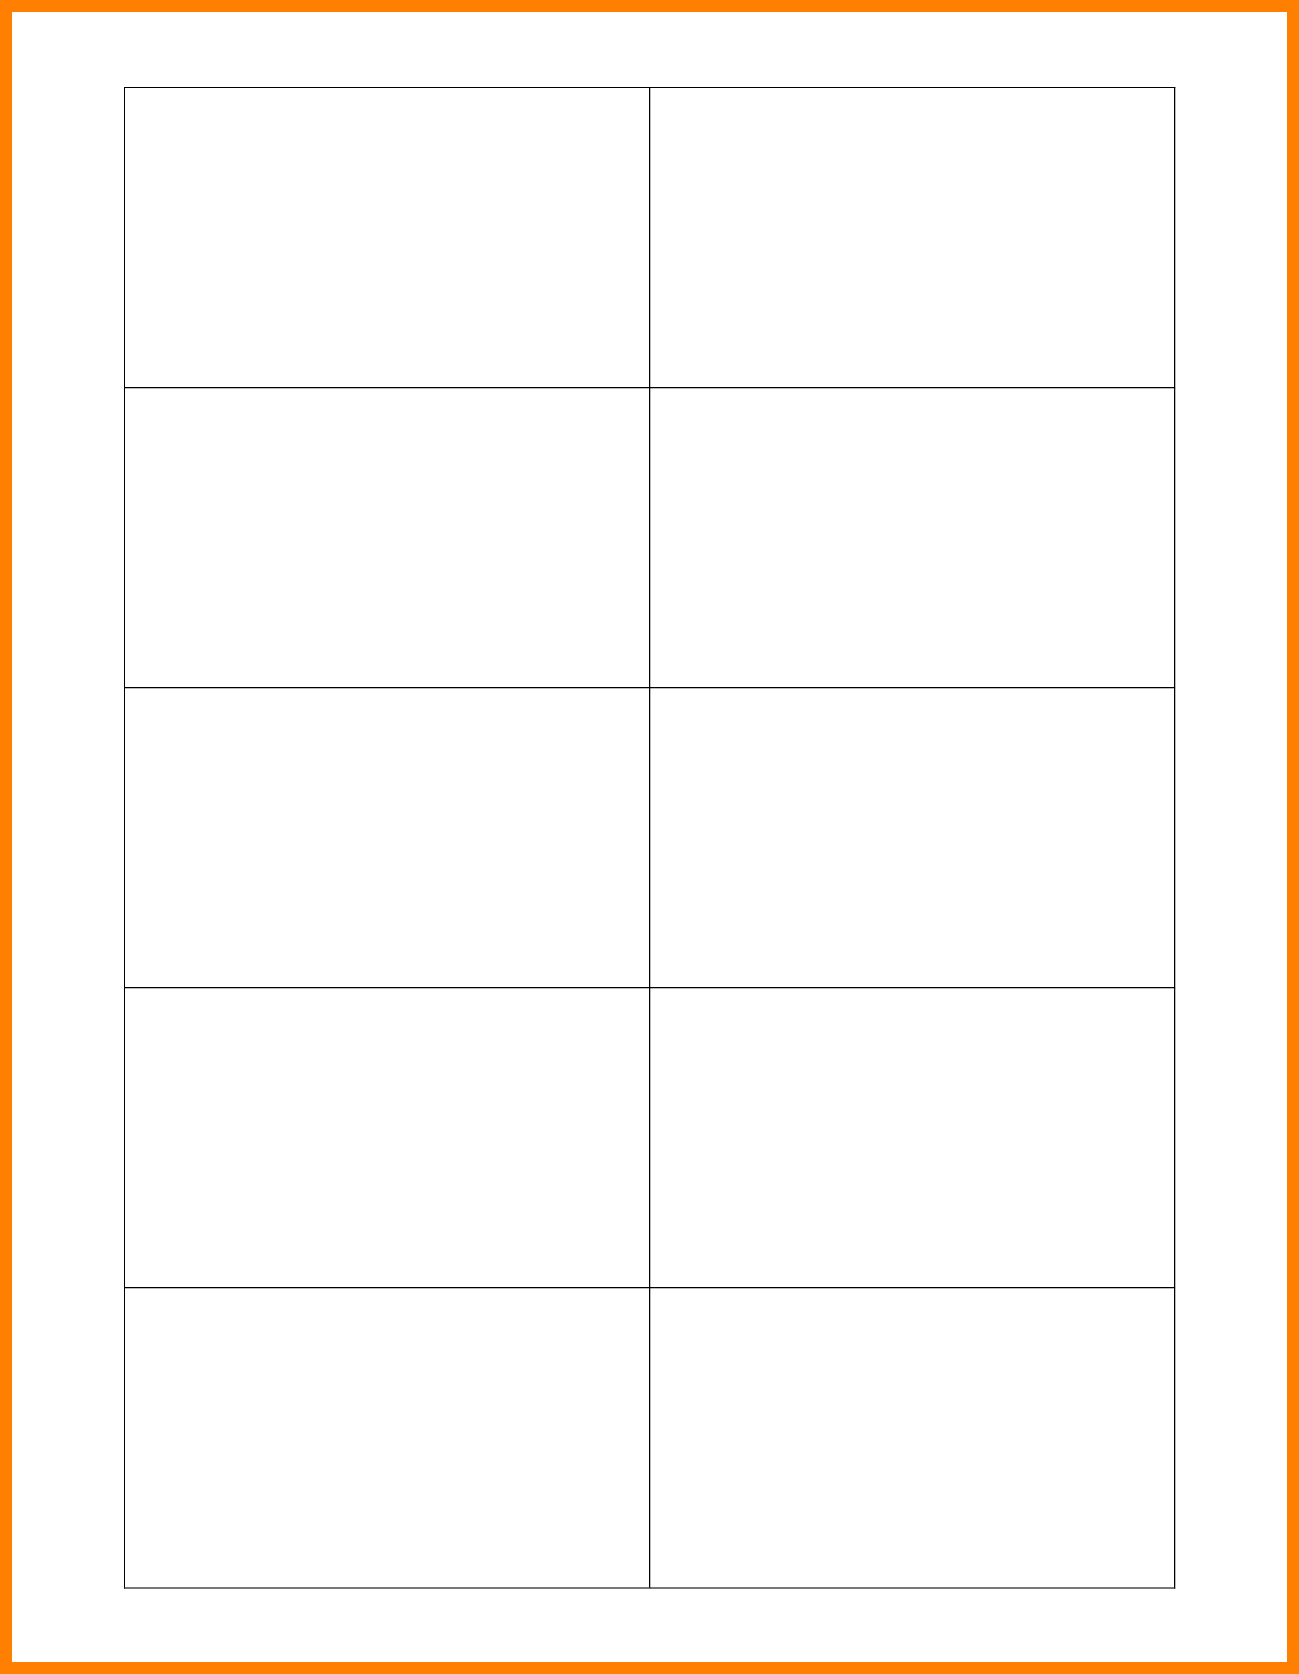 97 Free Printable Blank Business Card Template Microsoft Word 2007 Templates for Blank Business Card Template Microsoft Word 2007